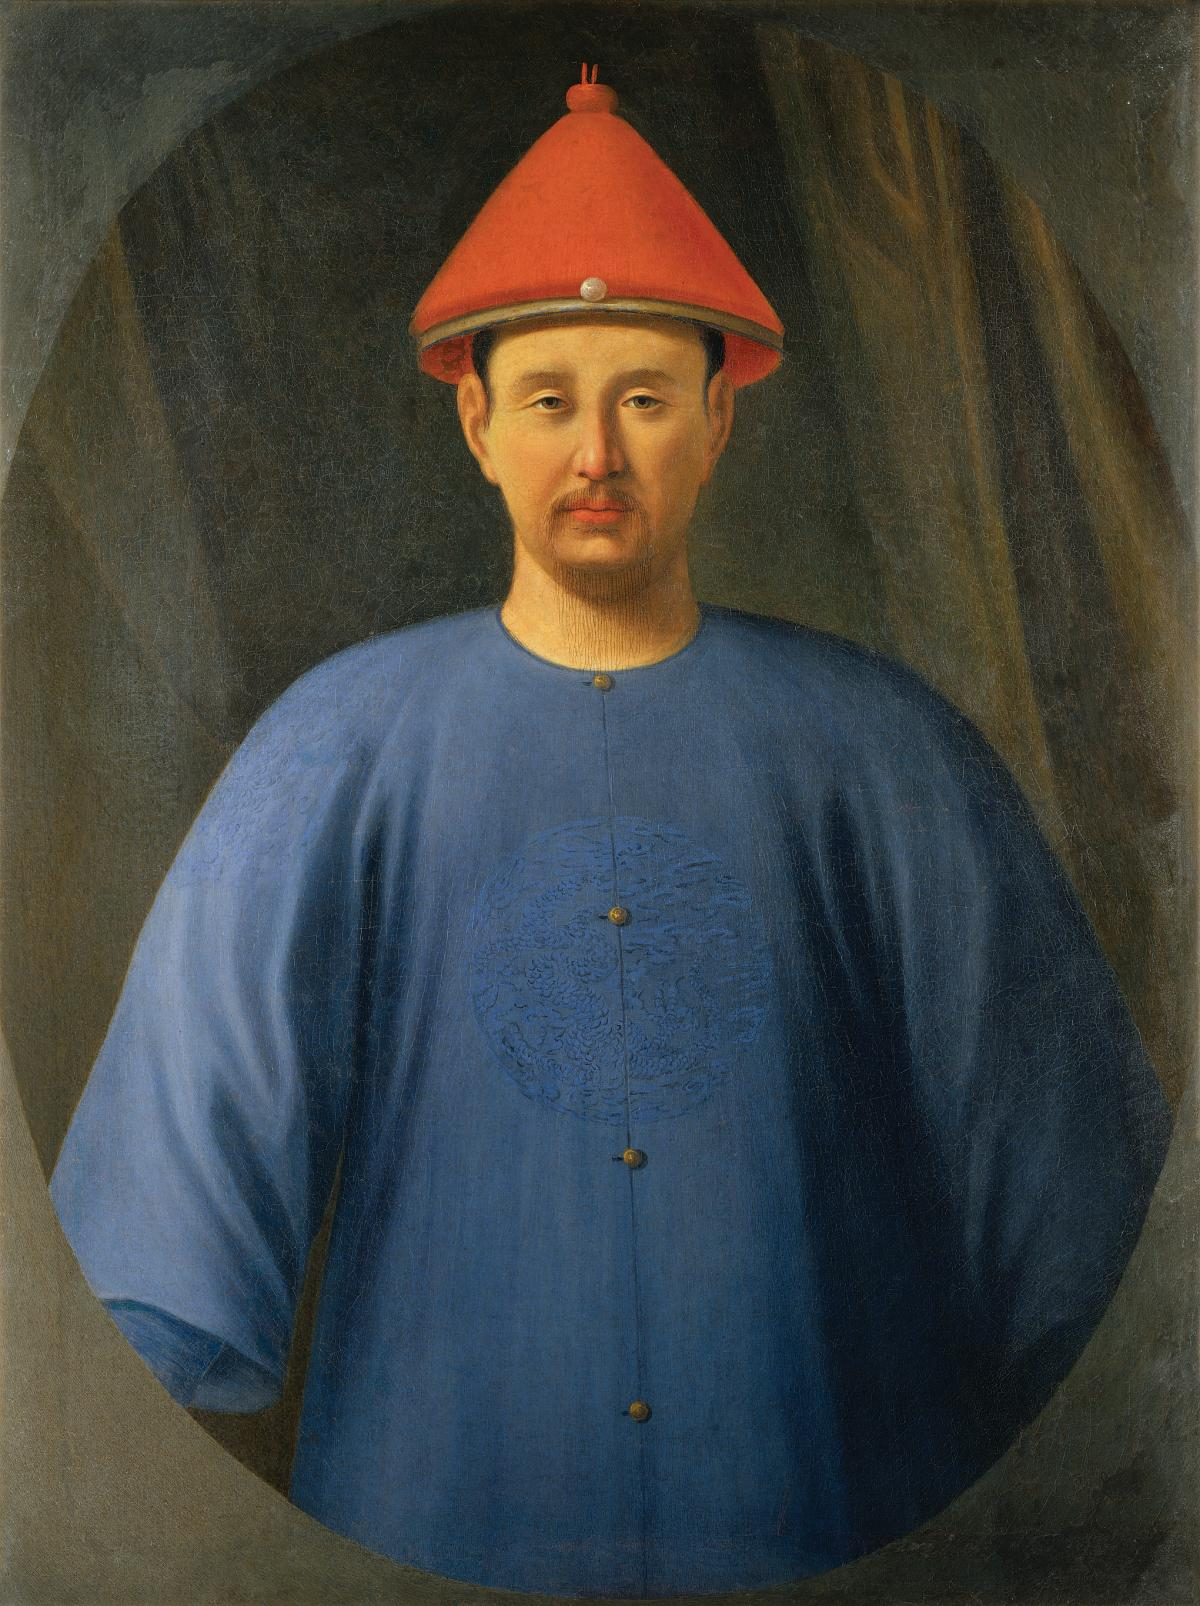 Emperor, clean shaven, wearing a conical red hat and plain blue smock